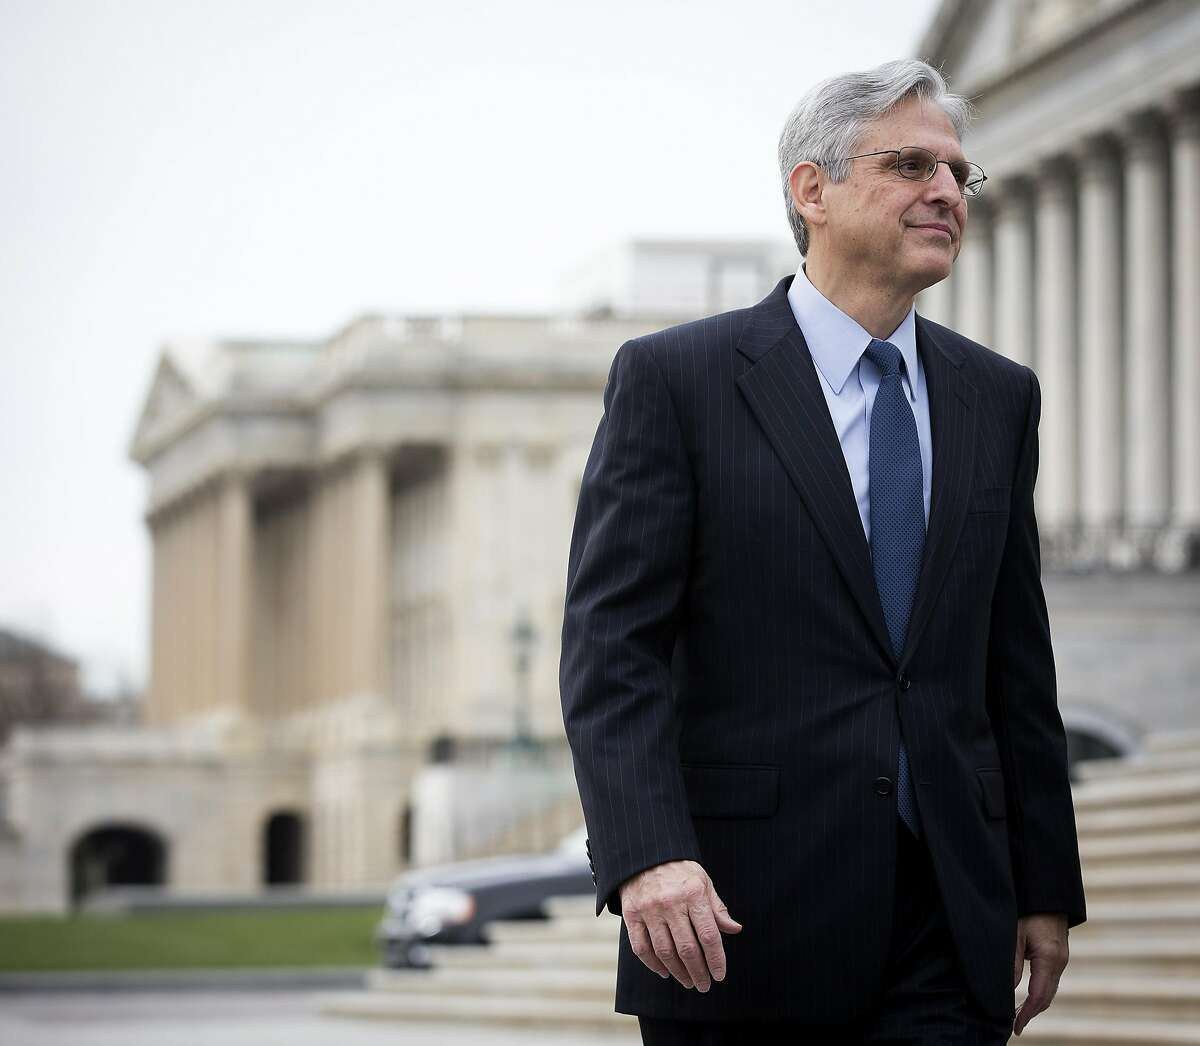 Judge Merrick Garland outside of the Capitol in Washington, March 22, 2016. Garland, President Barack Obama�s Supreme Court nominee, has deftly navigated Washington�s high-powered legal circles for decades. (Doug Mills/The New York Times)